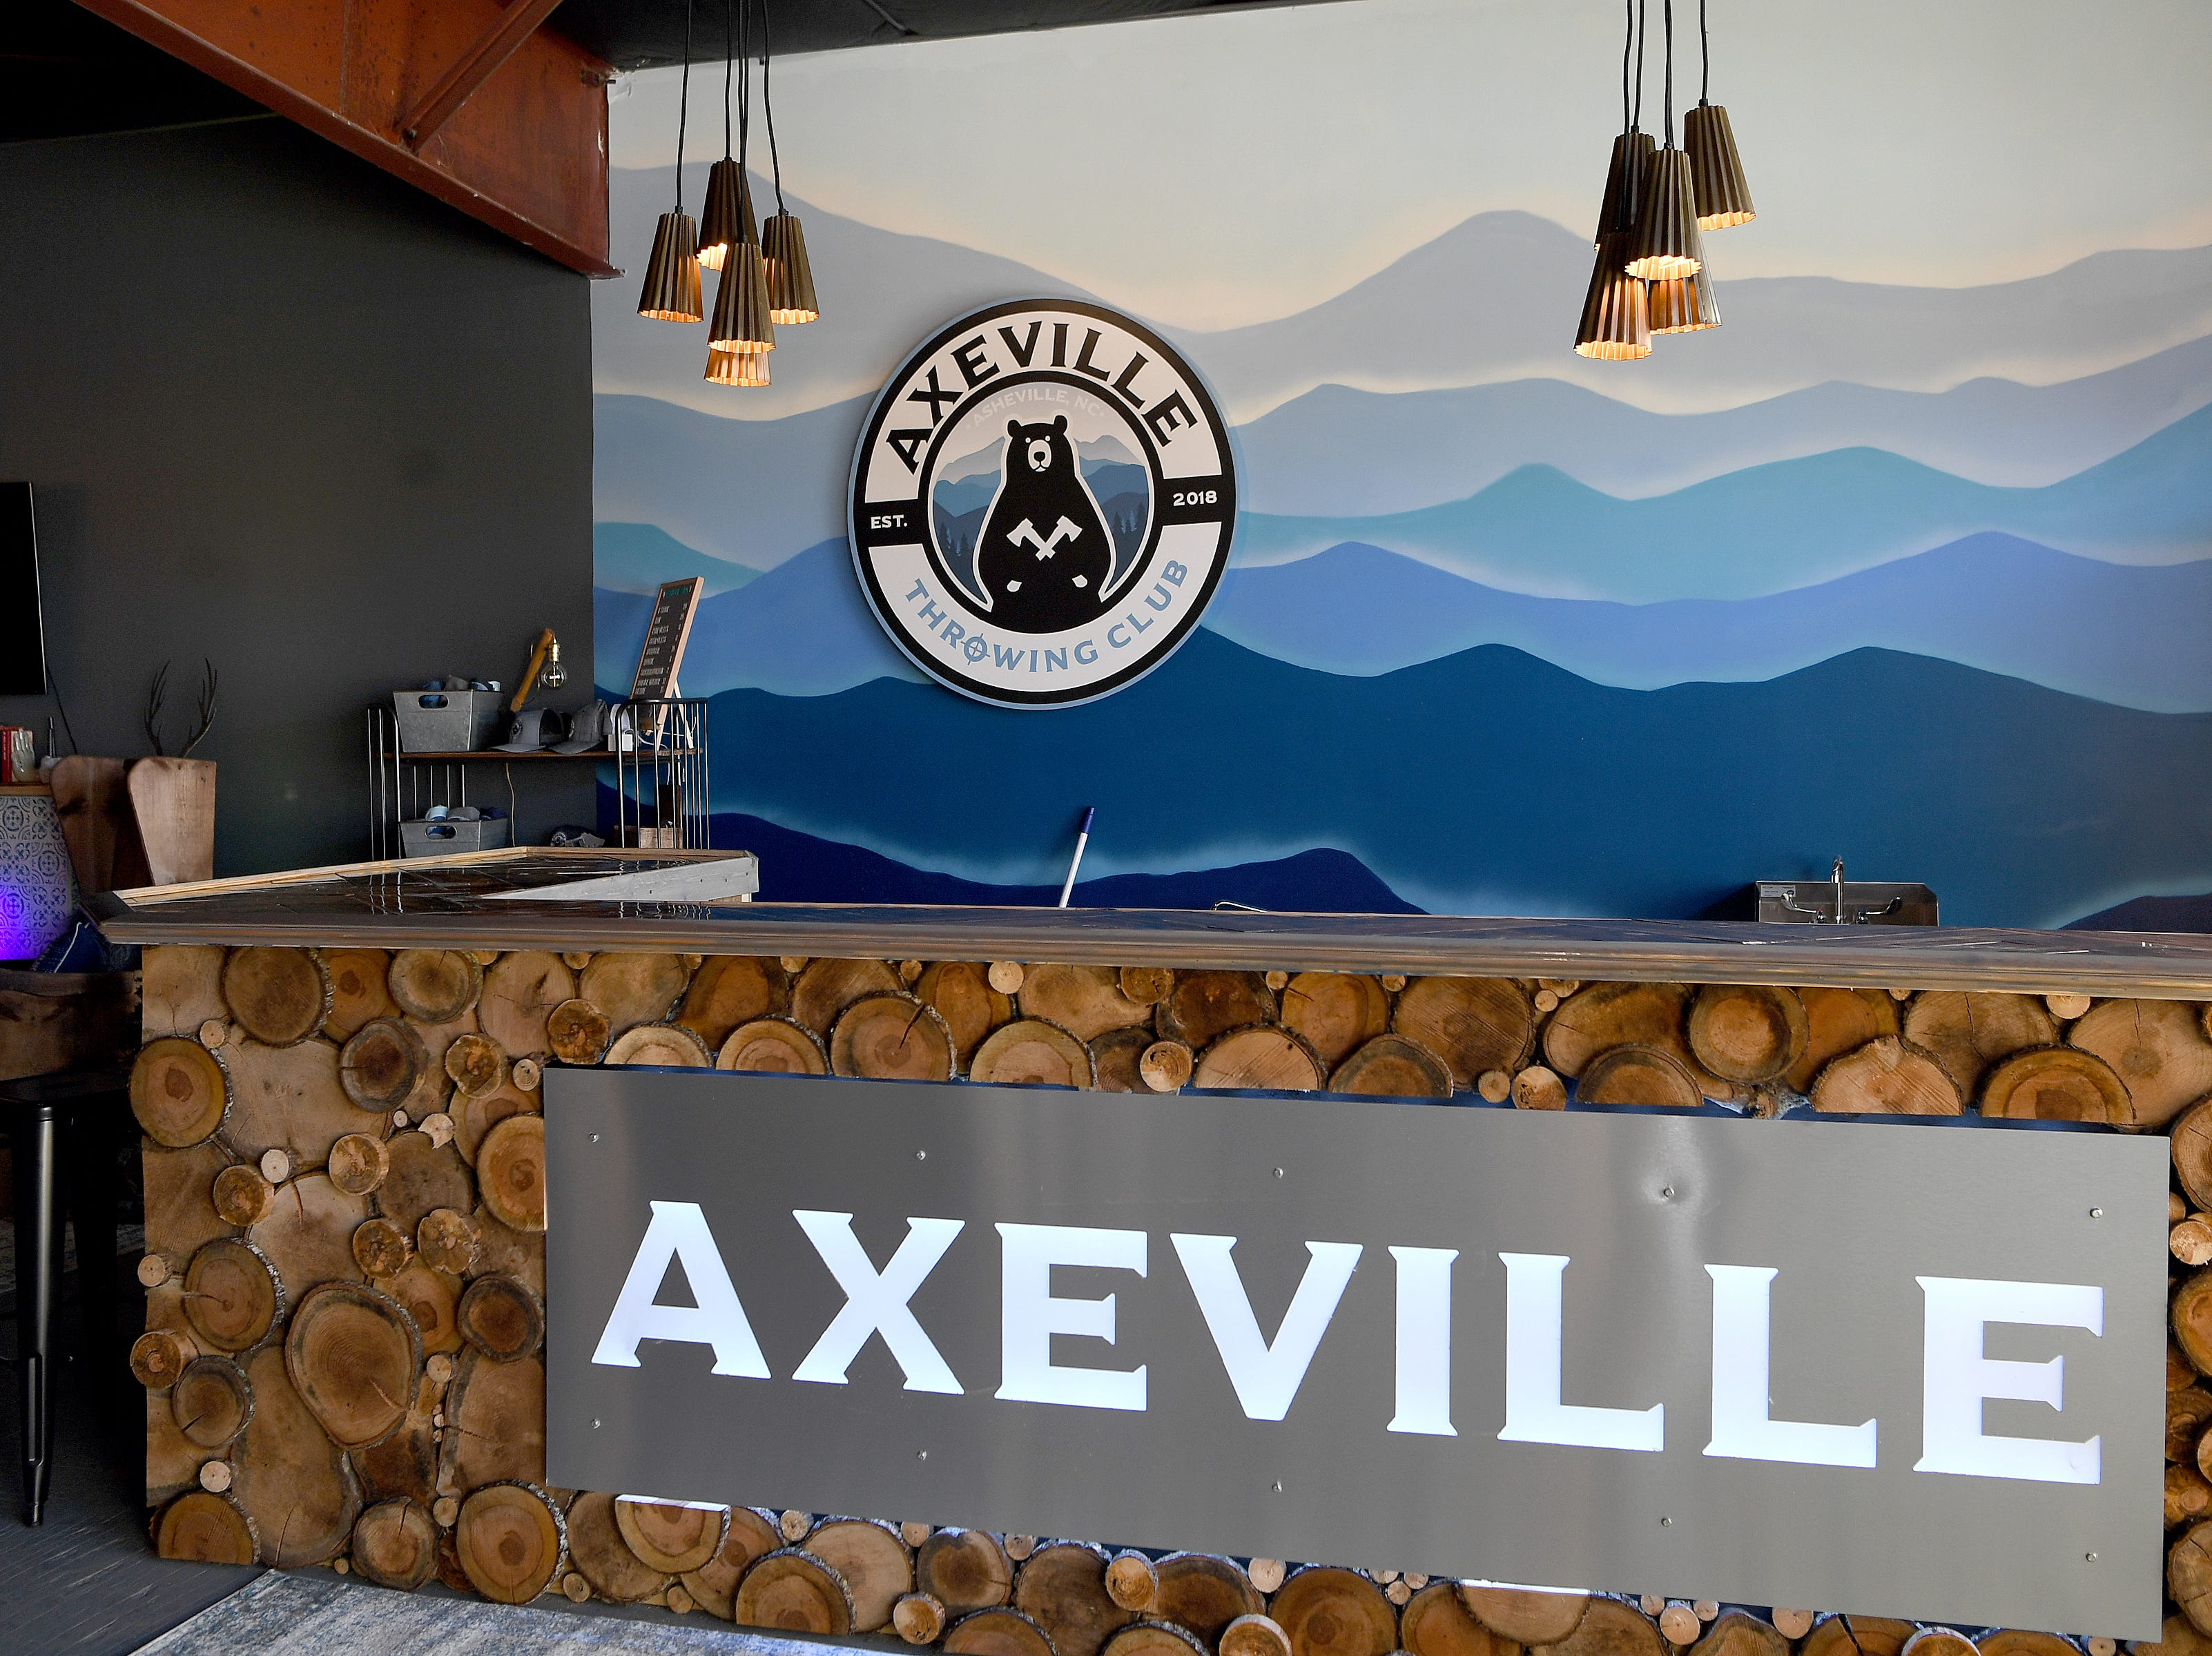 Axeville Throwing Club, Asheville's first ax throwing facility, is planning to open to the public in March. The facility serves beer, cider and wine but drinking is not the main attraction of the facility.